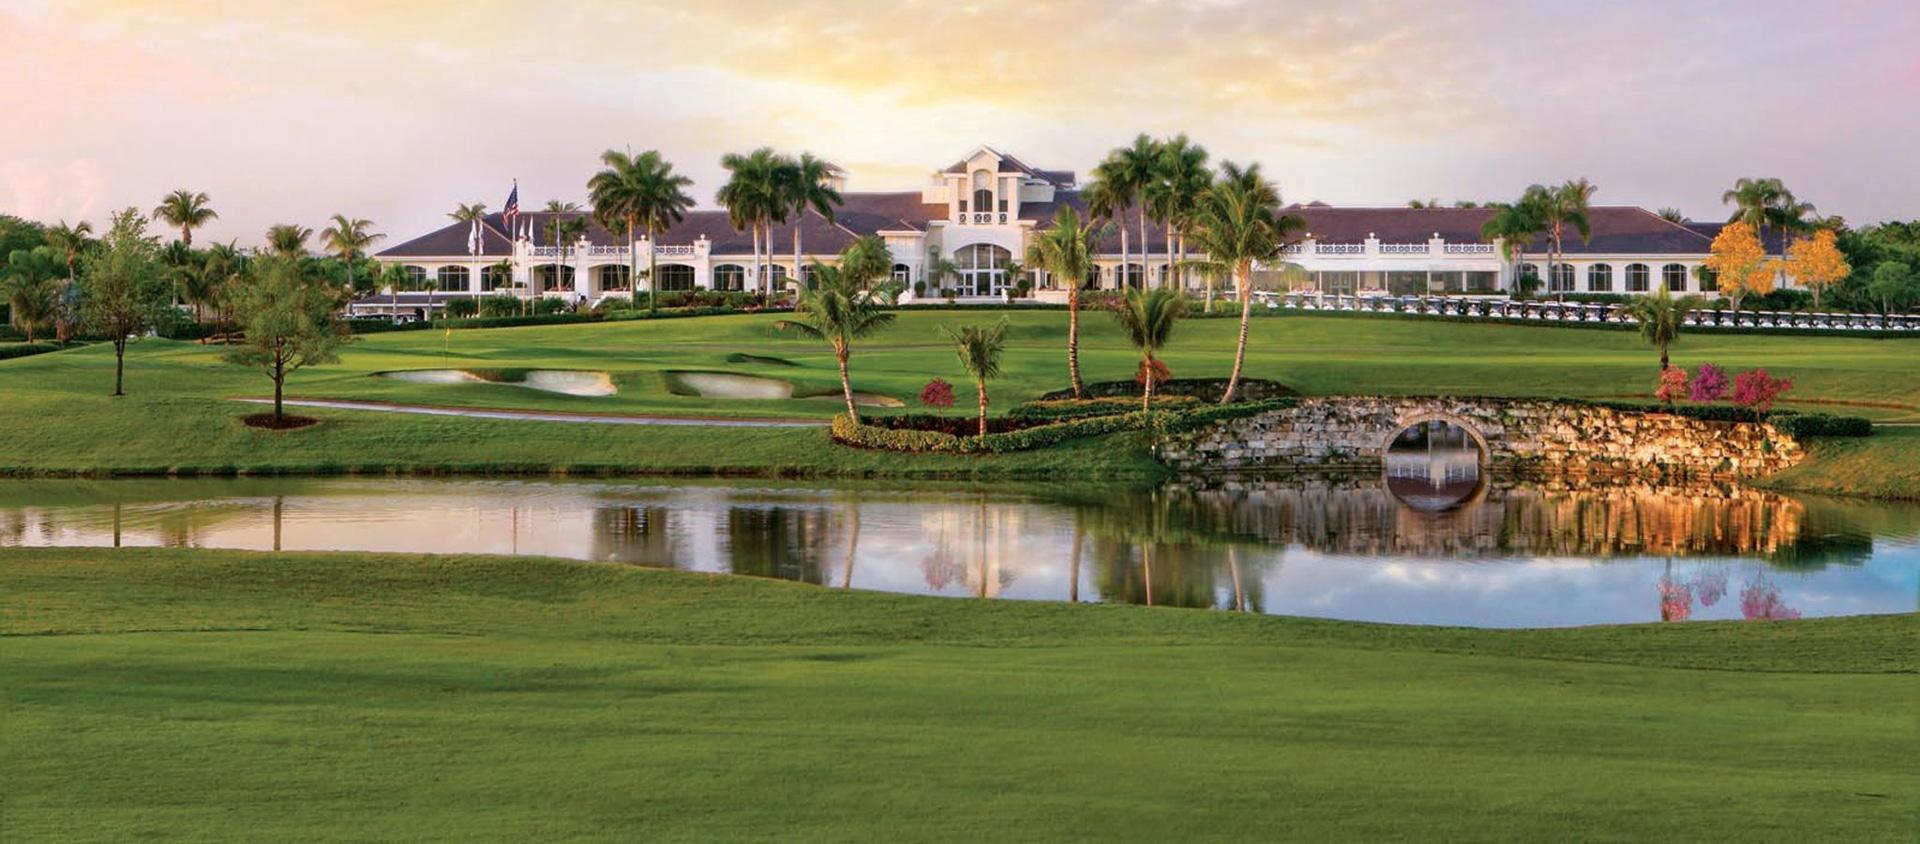 Beau BallenIsles Country Club Is A Premier, Gated, Residential Community Of  Privacy And Prestige Nestled In The Heart Of Floridau0027s Palm Beaches.